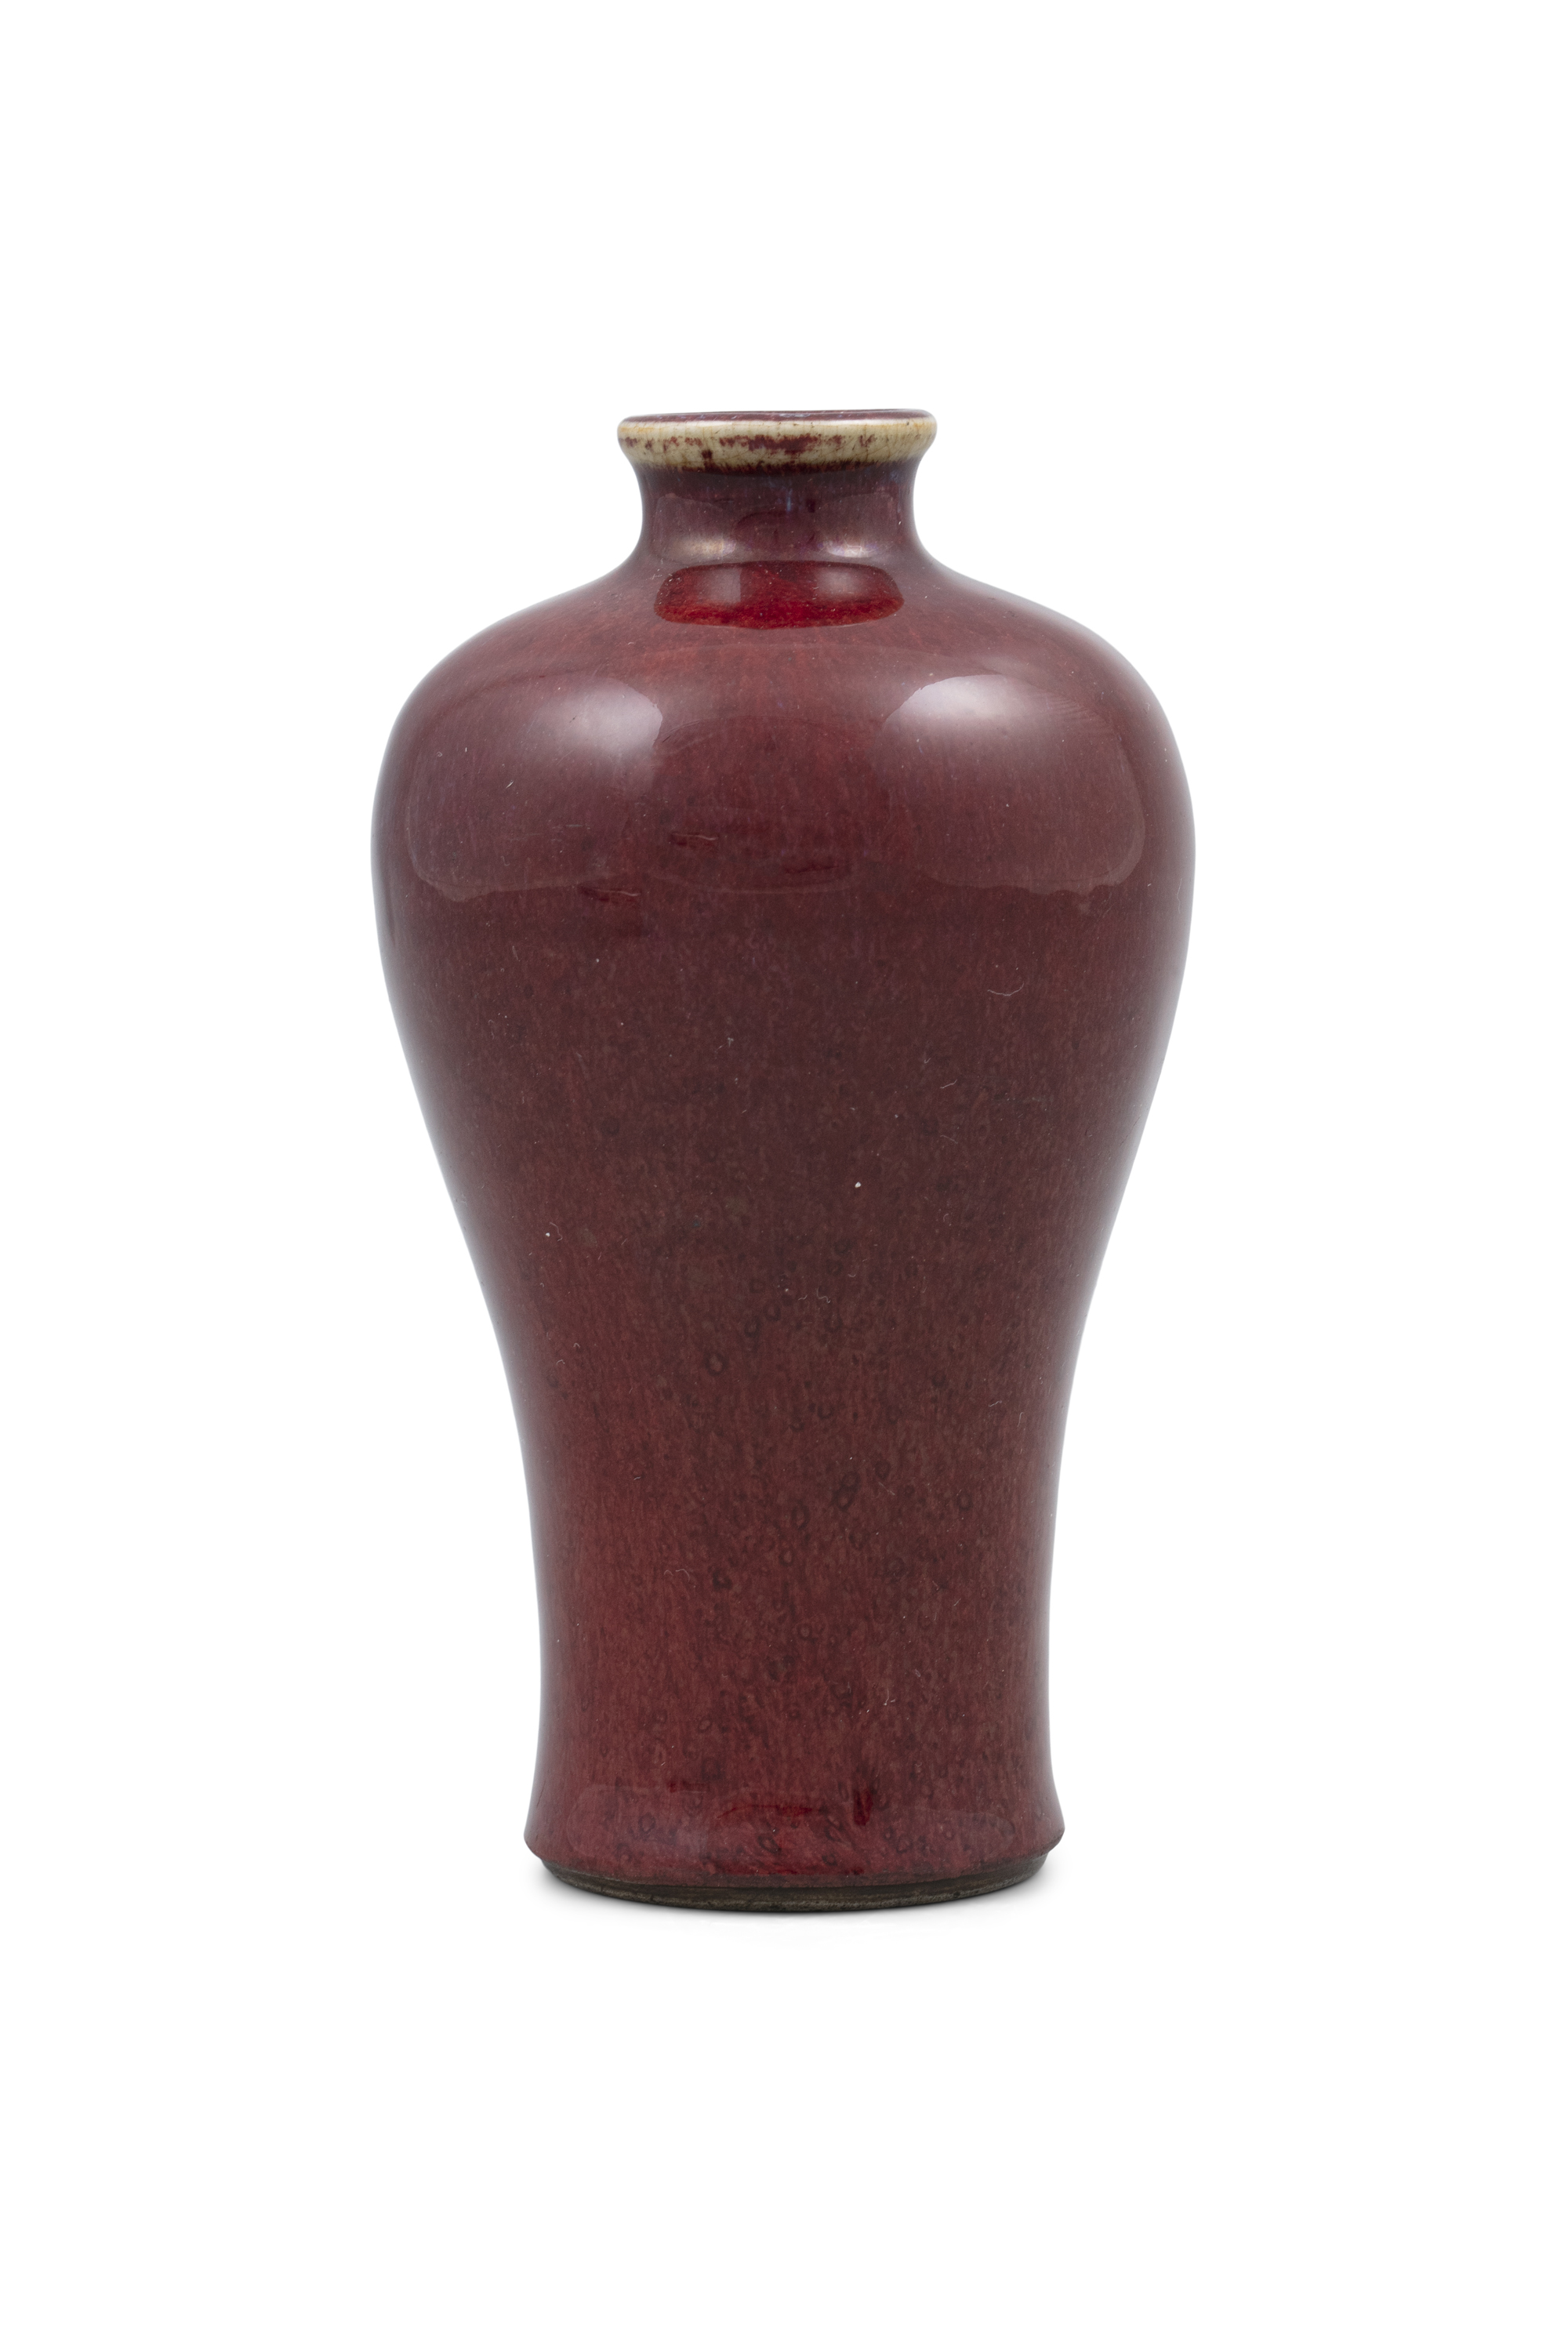 A FLAMBE GLAZED PORCELAIN MEIPING VASE China, Qing Dynasty, Most likely Kangxi period Bearing - Image 2 of 29